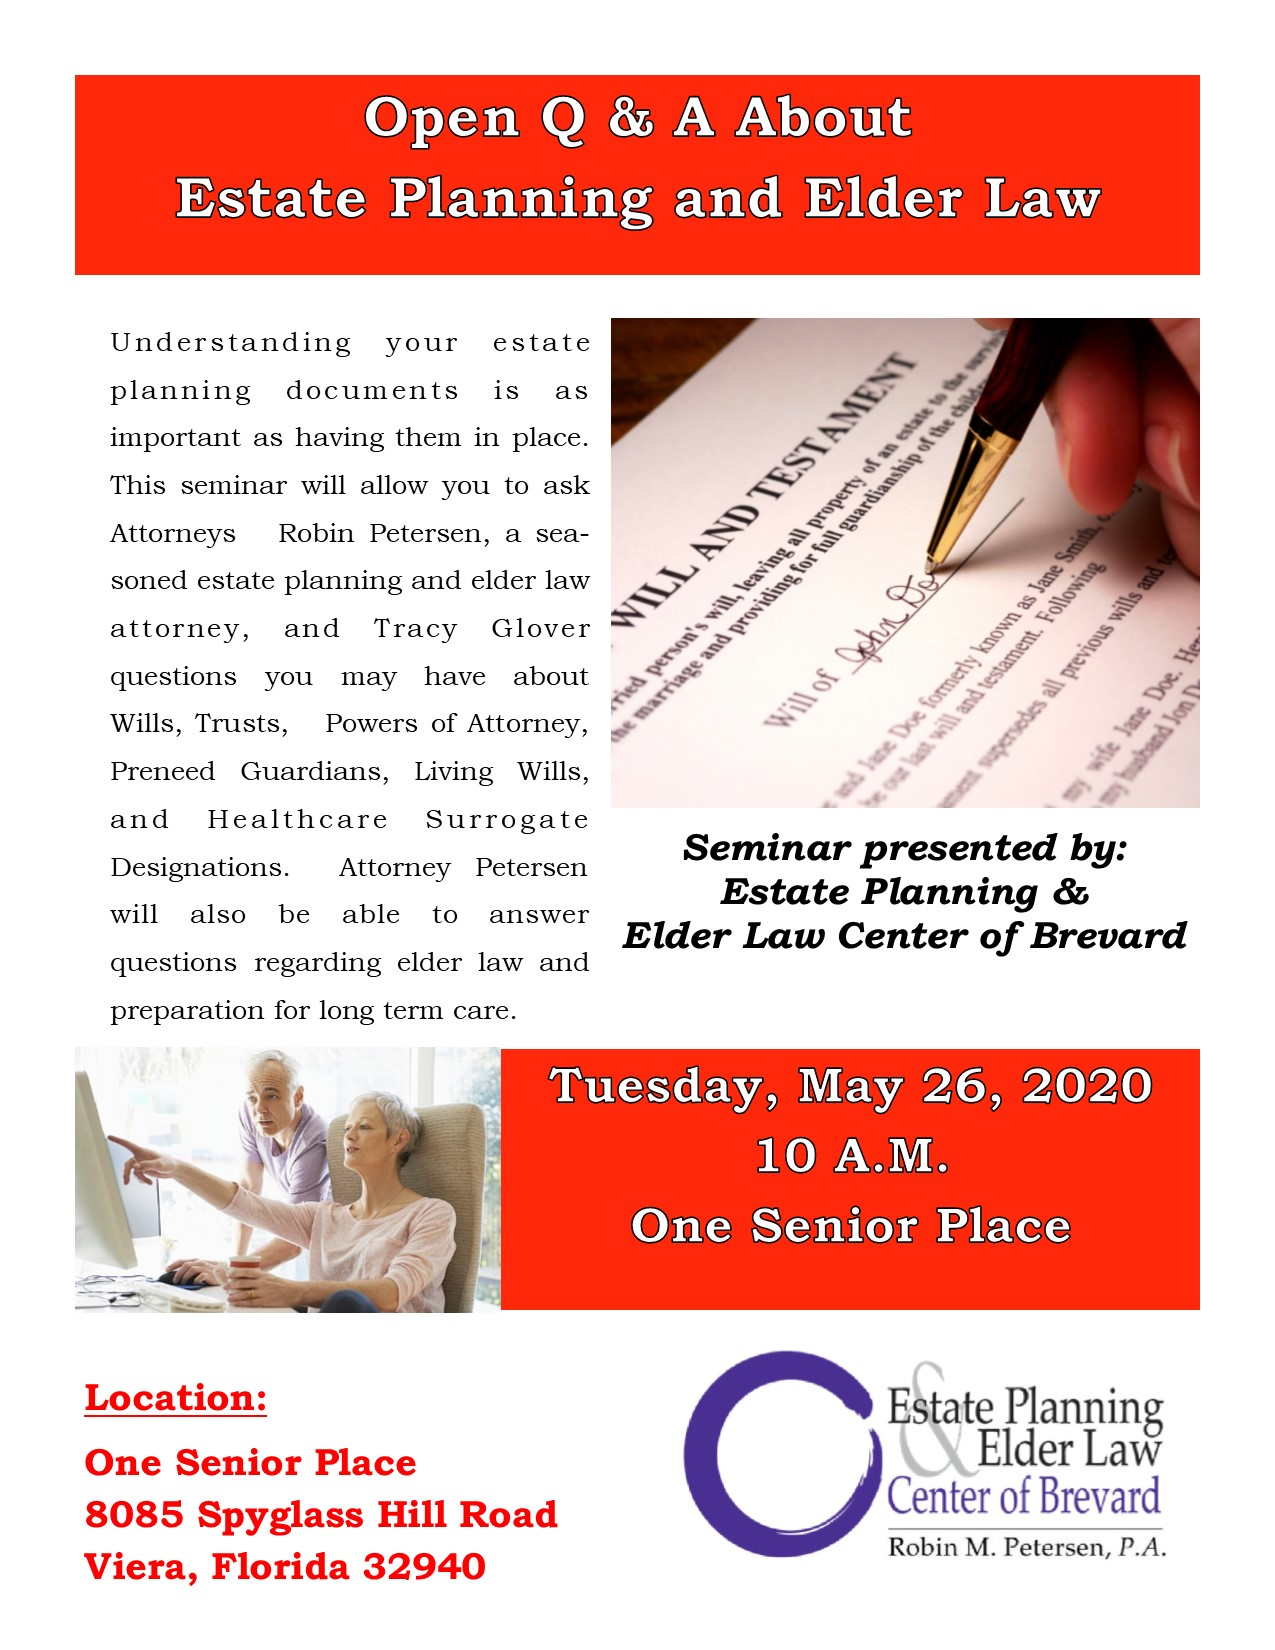 Open Q & A About Estate Planning and Elder Law presented by Estate Planning and Elder Law Center of Brevard